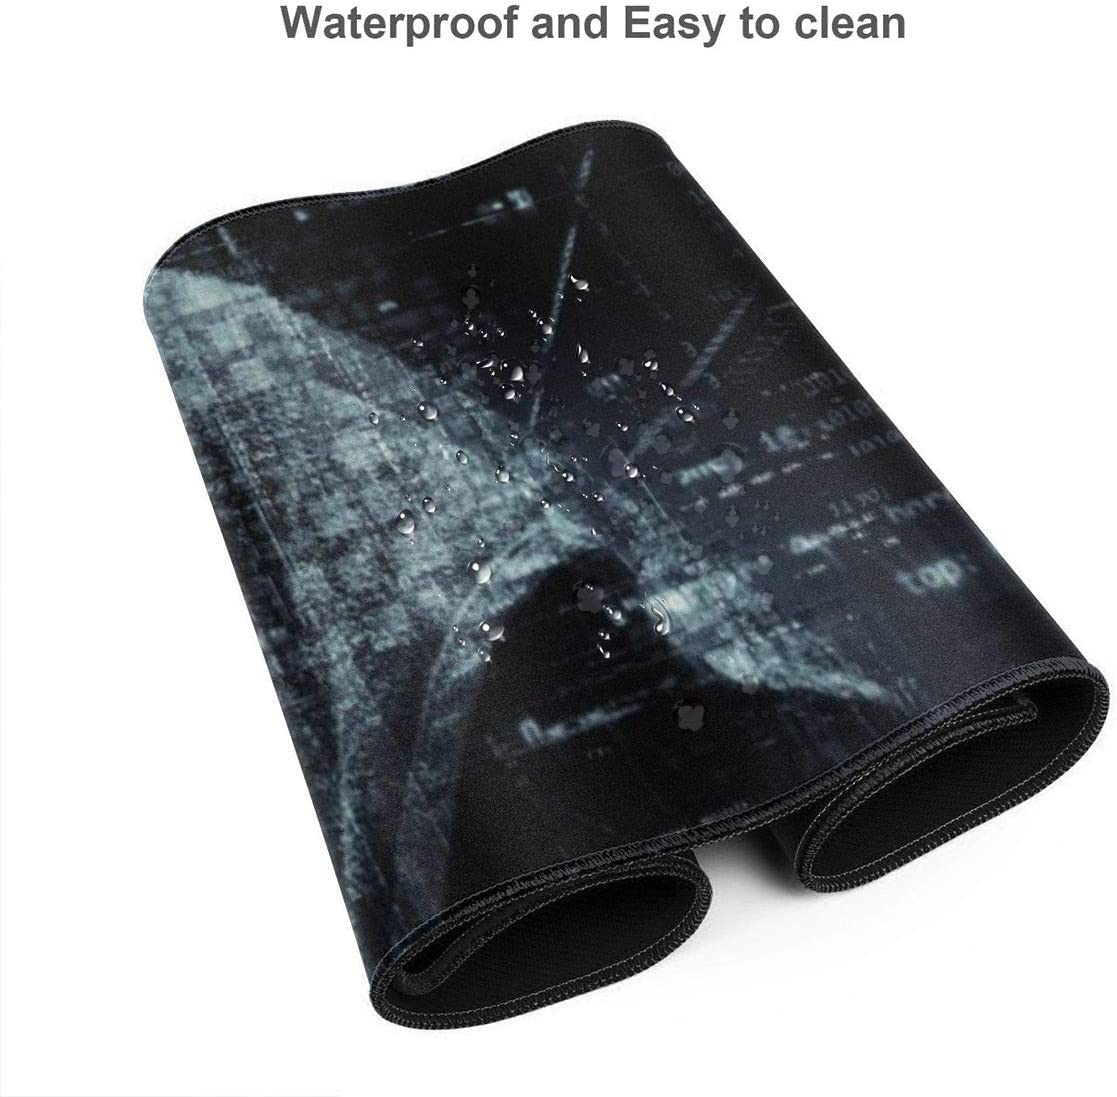 Stitched Edges Mousepad Chemistry Experiment Gaming Mouse Pad XL 31.5 X 11.8 Inch Extended Large Mouse Mat Desk Pad Long Non-Slip Rubber Base Mice Pad